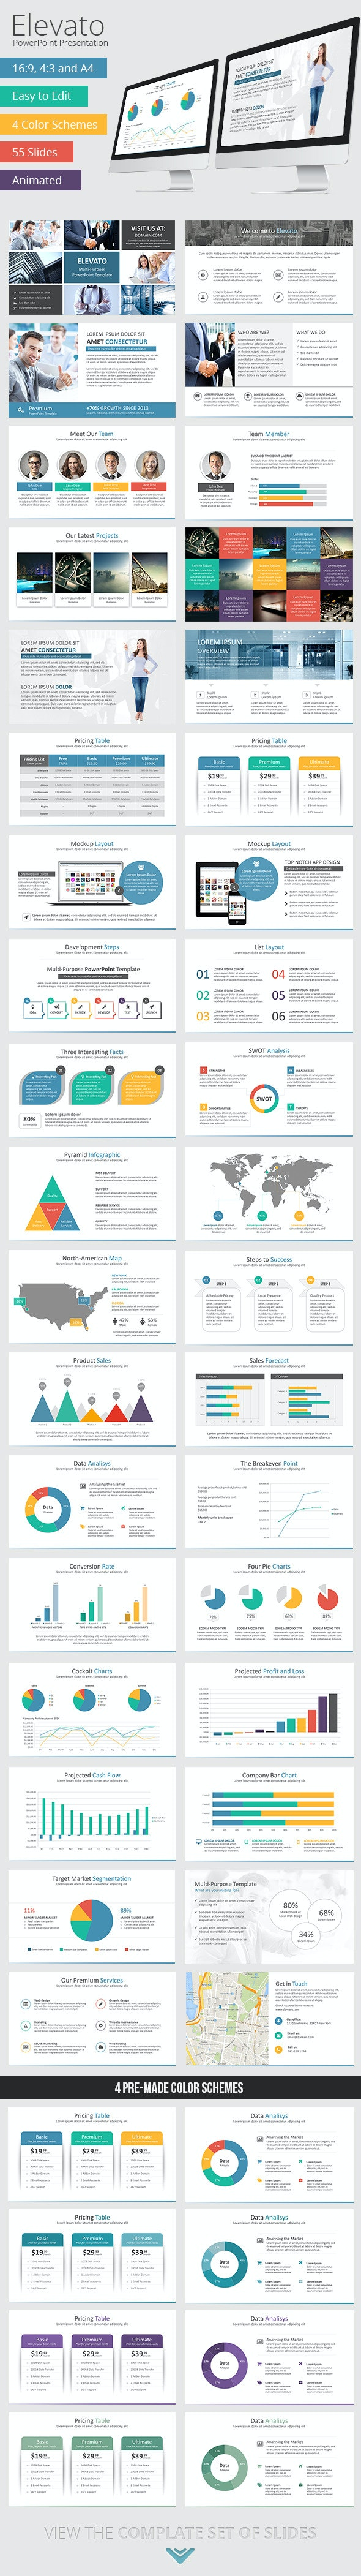 Elevato PowerPoint Presentation Template - Business PowerPoint Templates